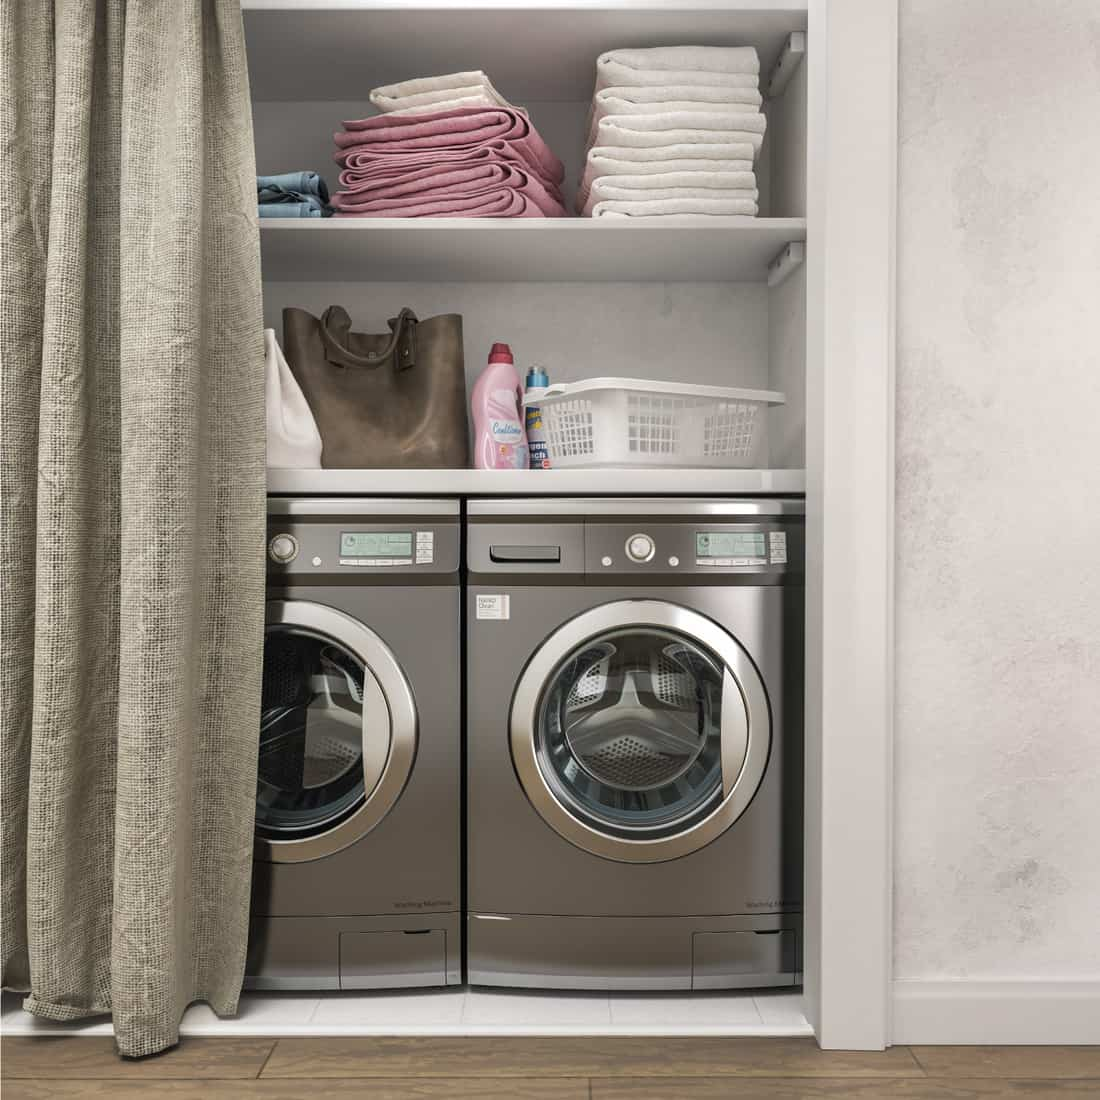 Laundry room with wood floor, washing machine at closet,white wall, shelving, clothes and curtains